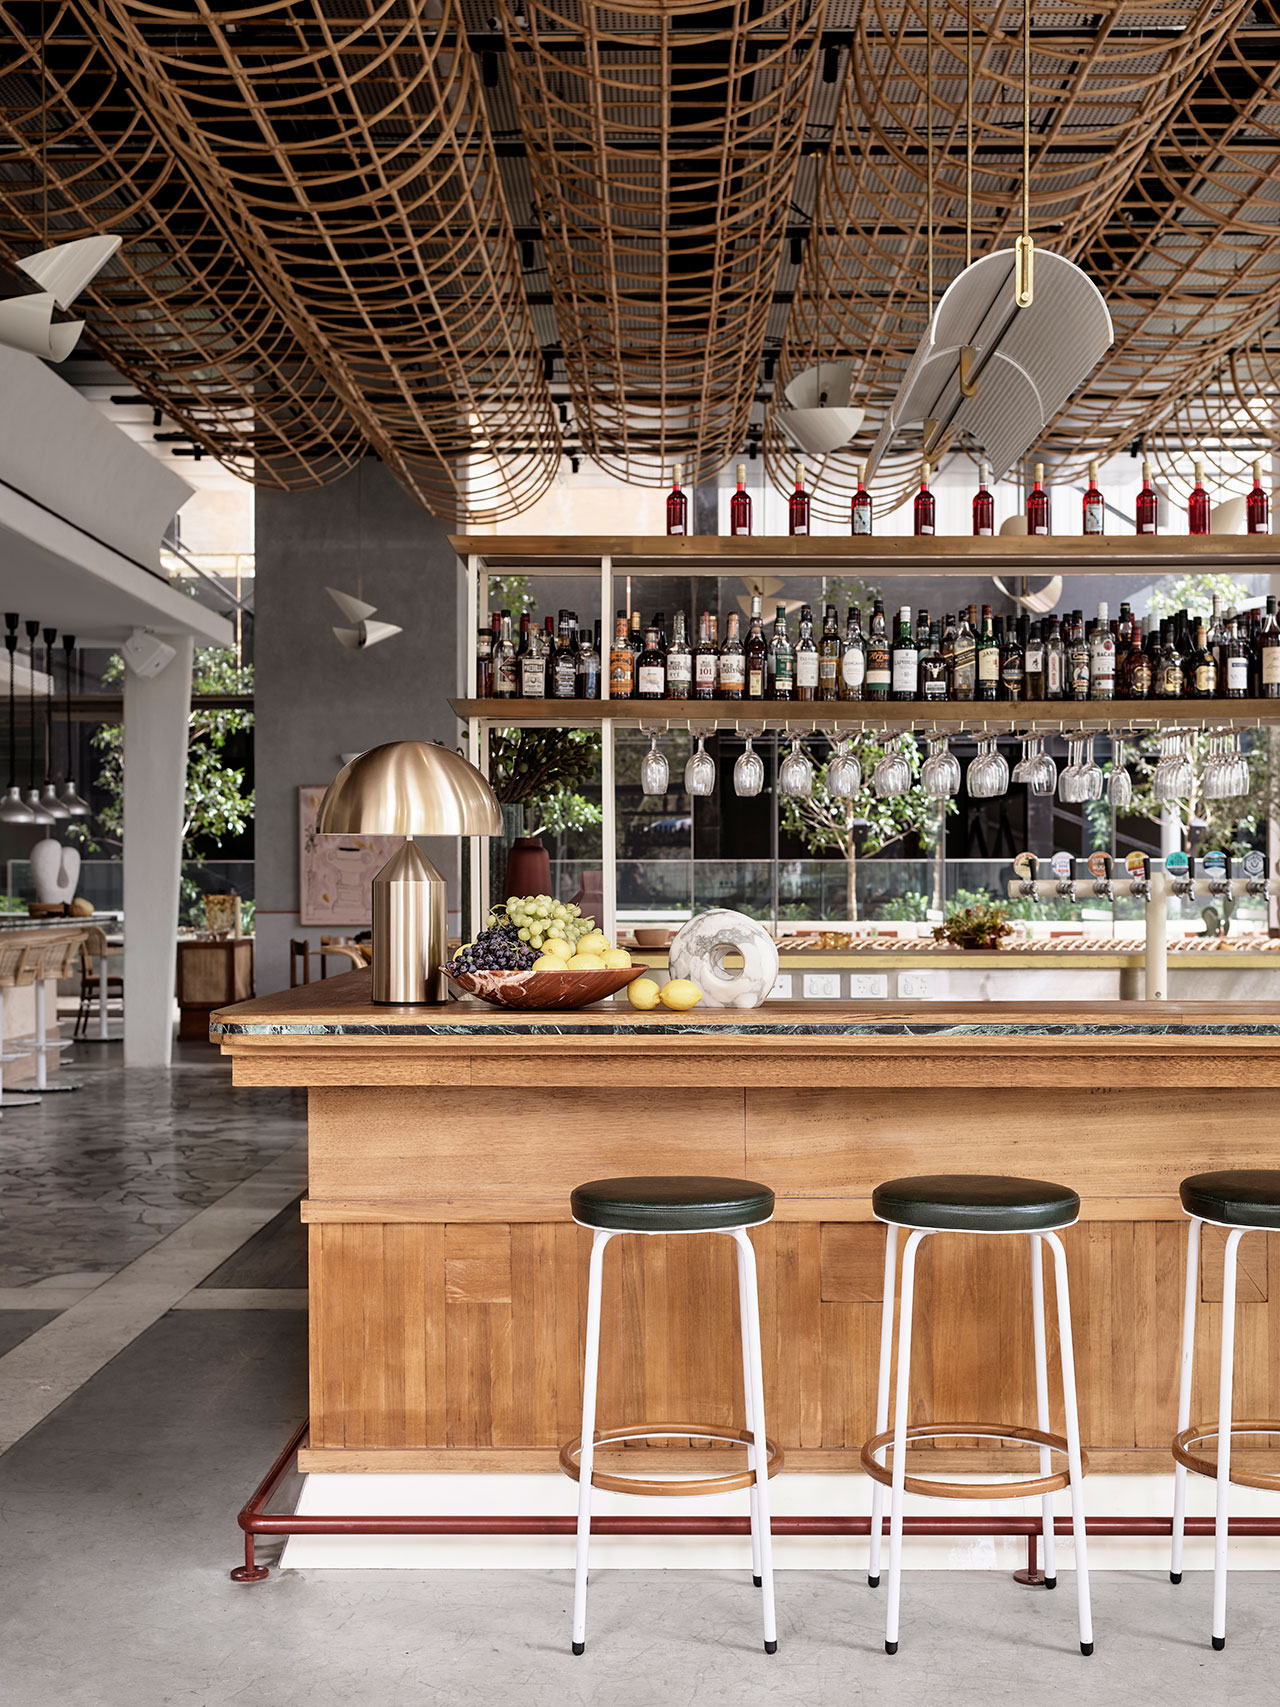 Glorietta restaurant by Alexander & CO. Photo by Anson Smart.